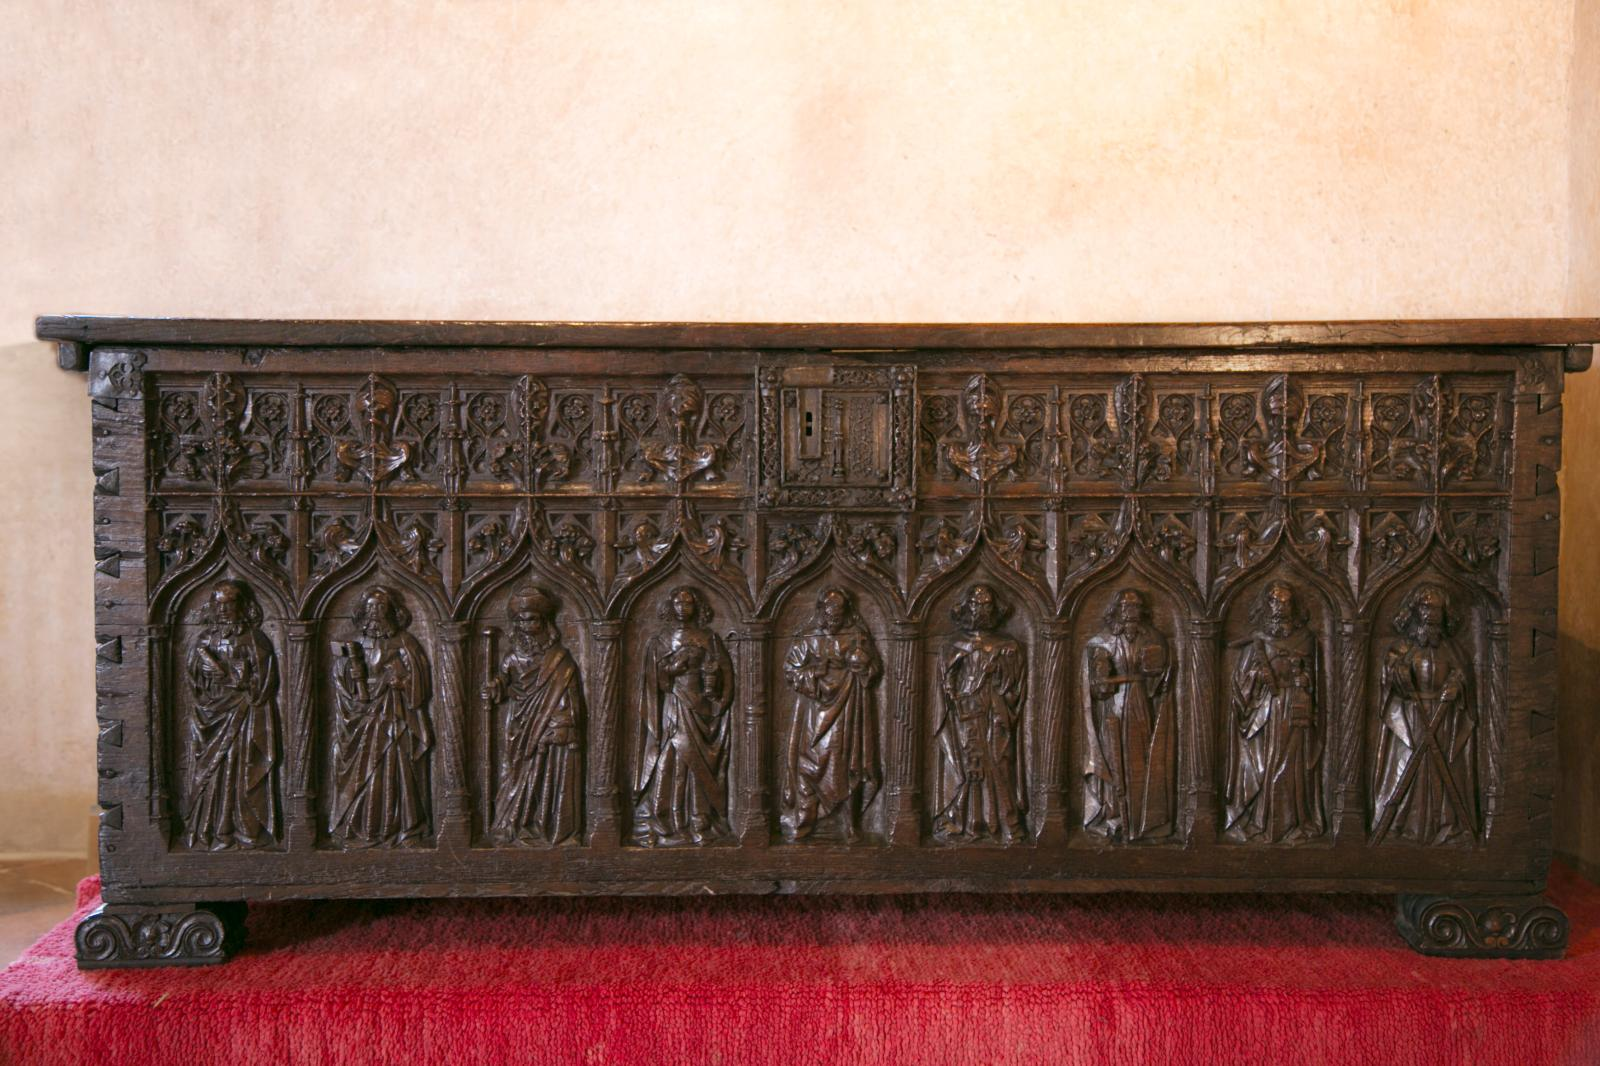 A 15th century French vestment chest at Château Lagrézette, Alain-Dominique Perrin's estate.